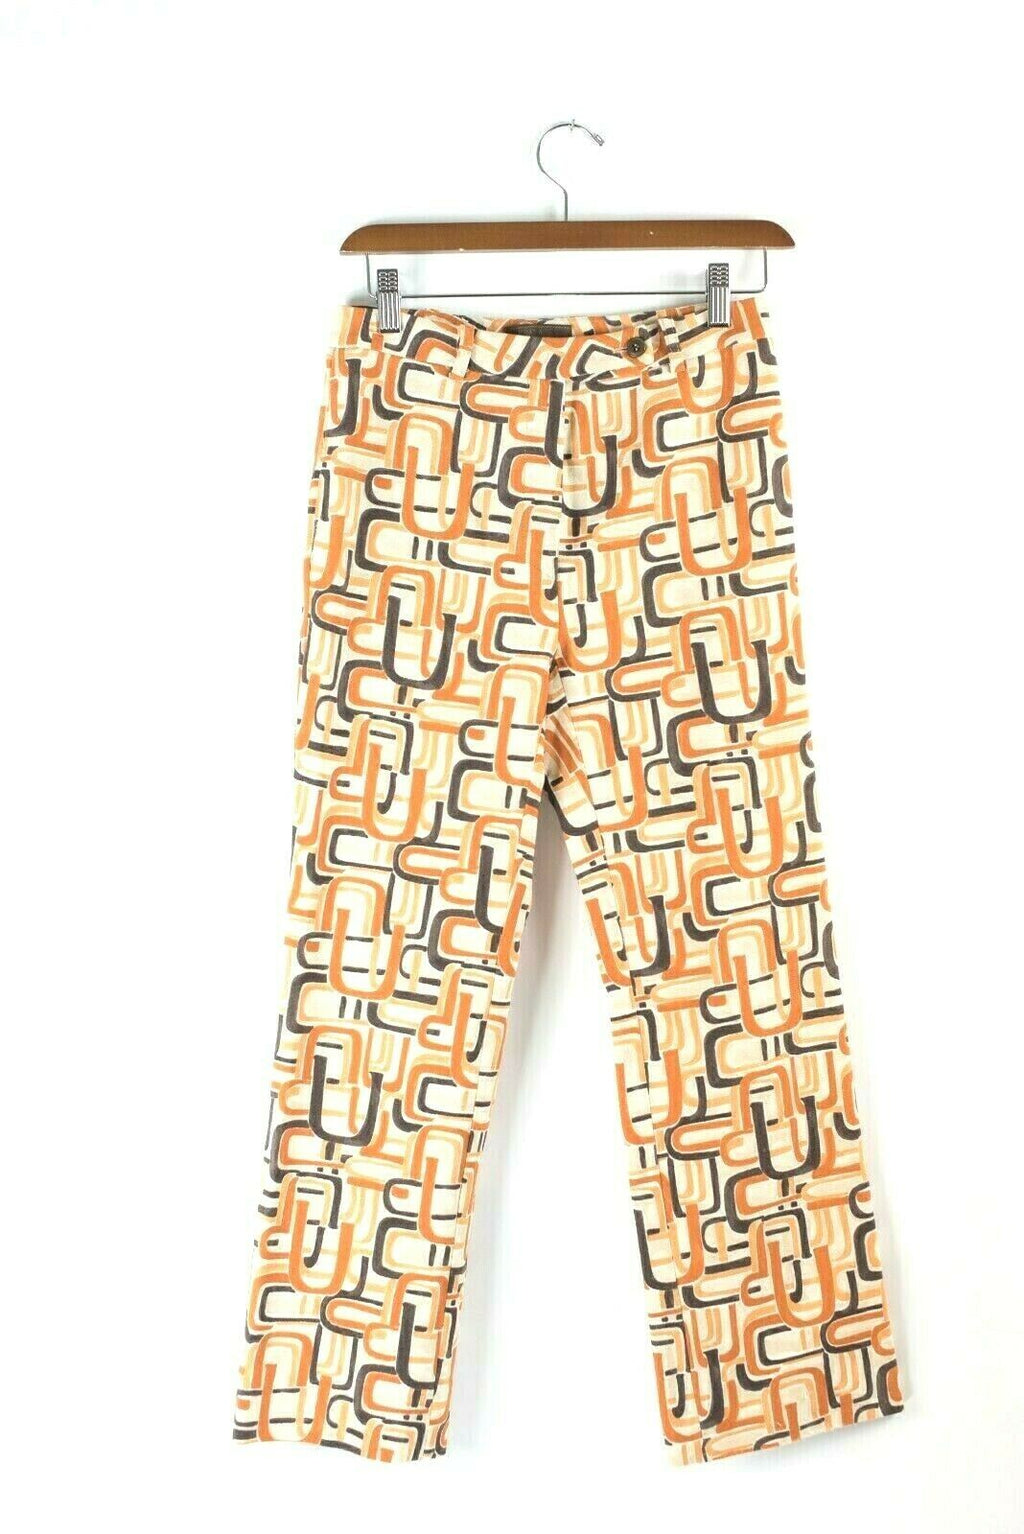 Prada Womens Size 42 Ivory Orange Trousers Straight Leg Pants Retro Vintage Rare